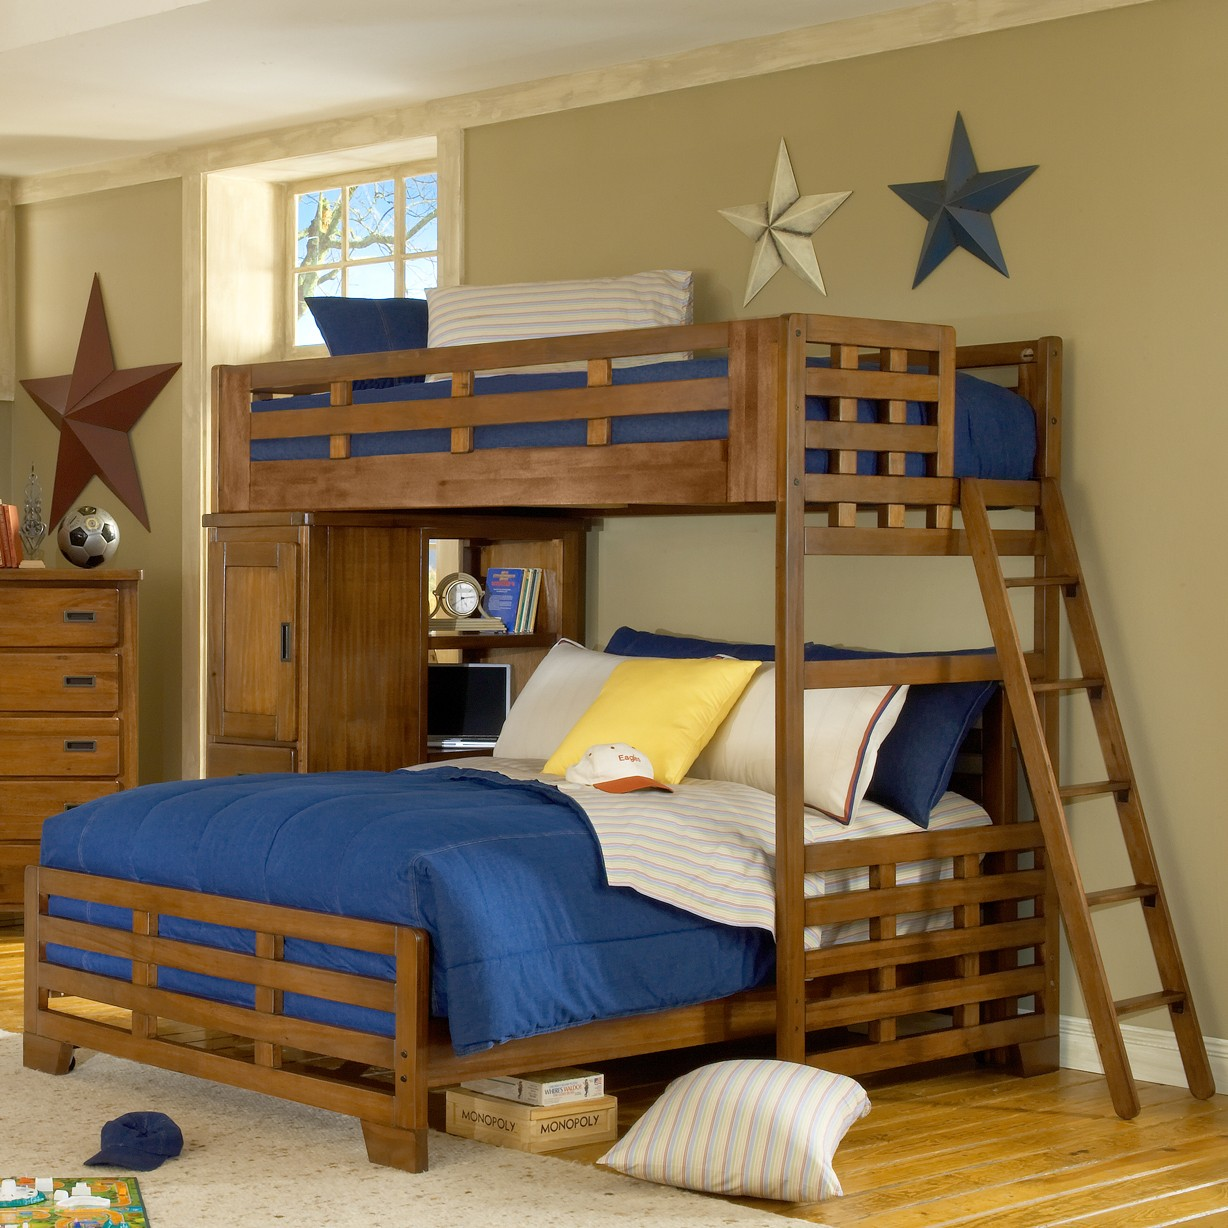 Heartland loft bedroom set from american woodcrafters for 1800 beds